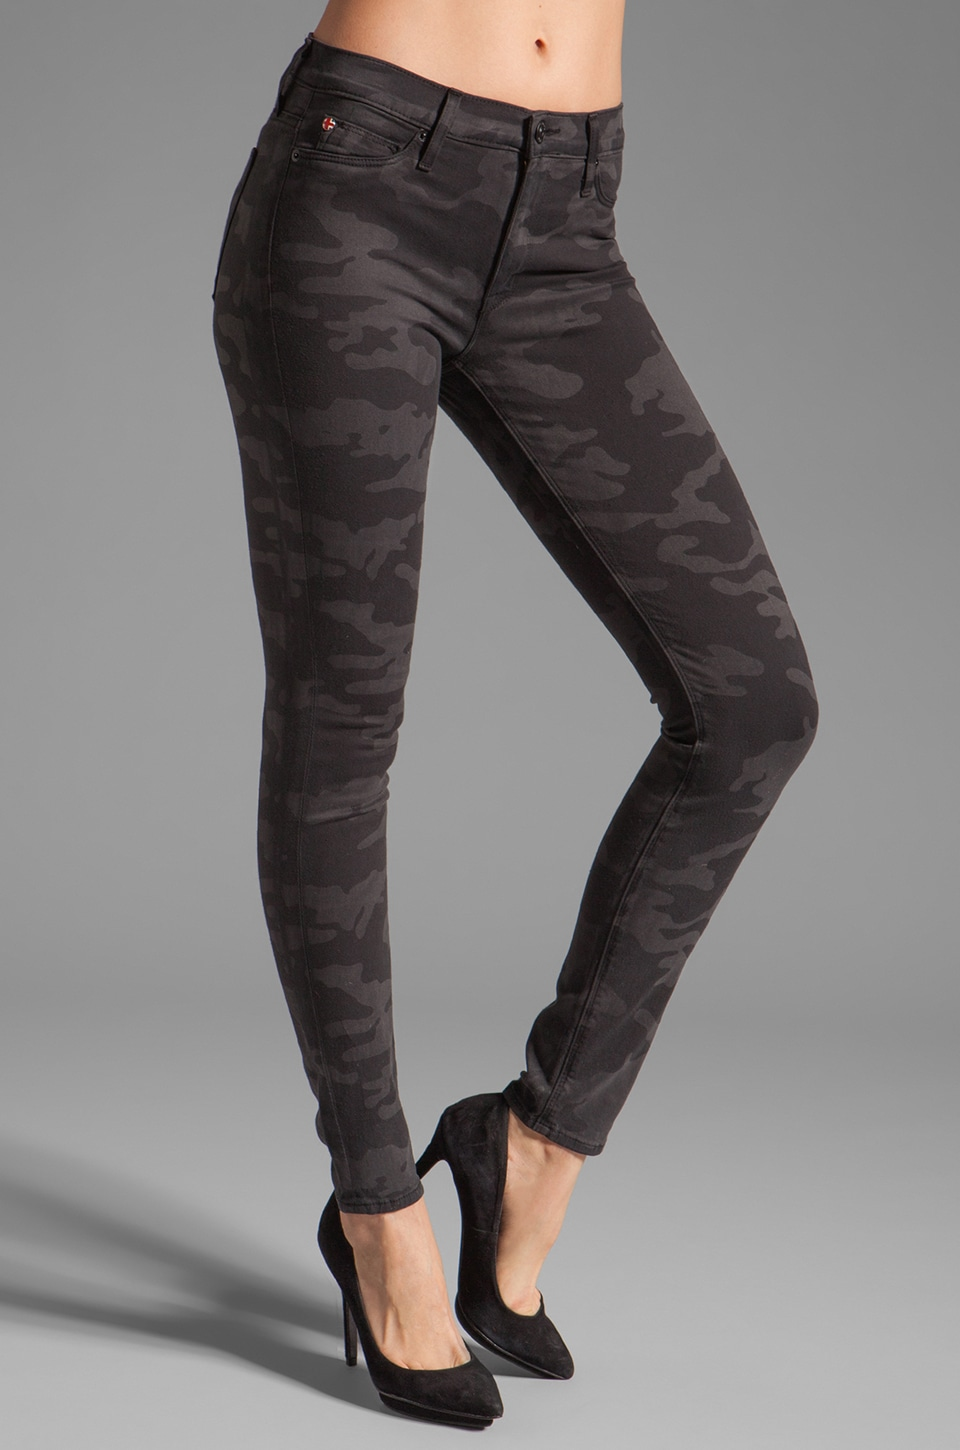 Hudson Jeans Nico Midrise Super Skinny in Charcoal Camo